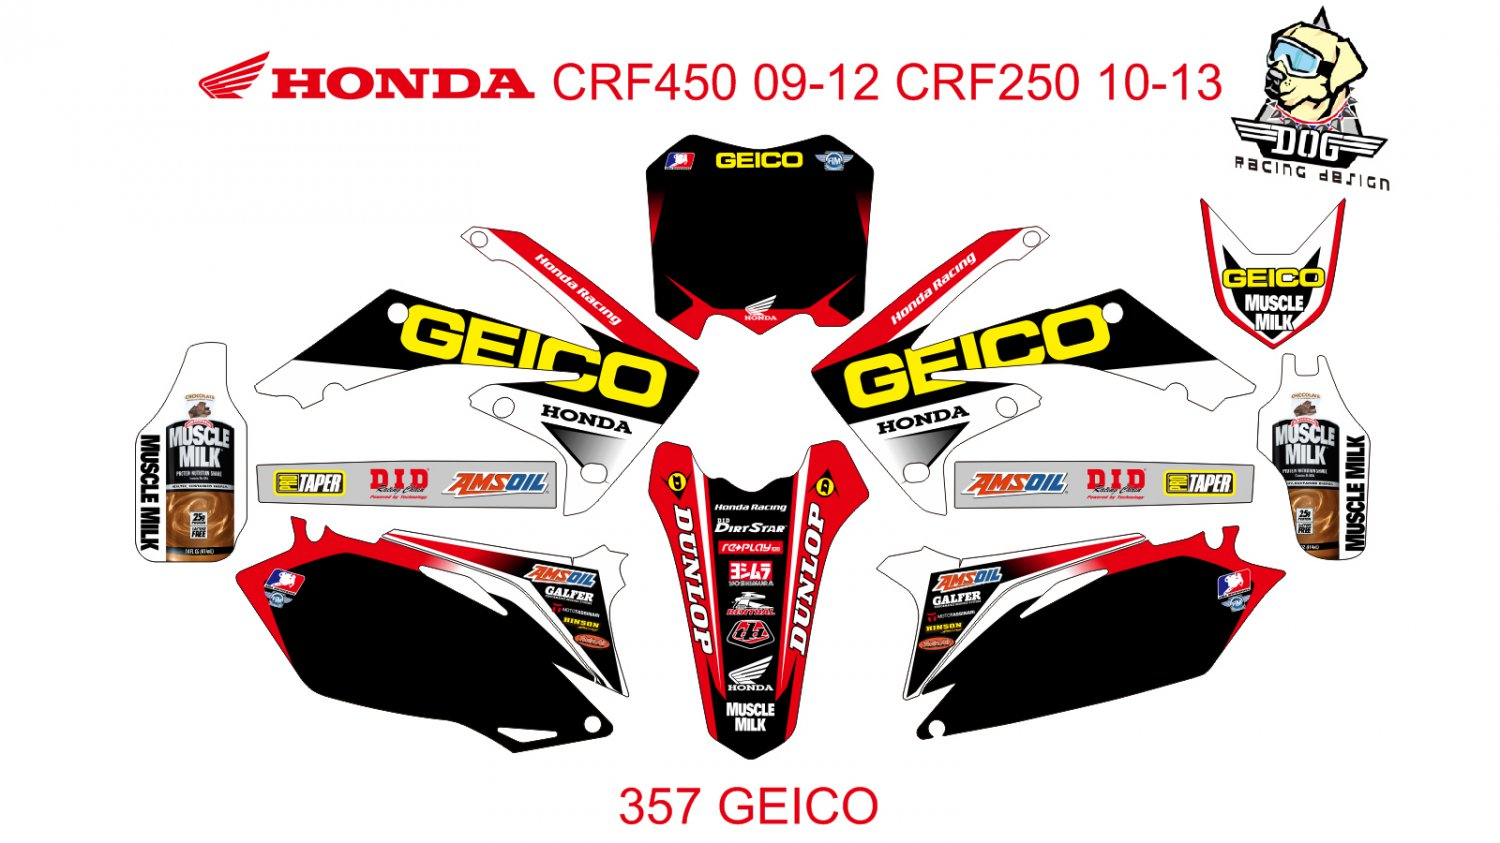 HONDA CRF250 2010-2013 CRF450 2009-2012 GRAPHIC DECAL KIT CODE.357